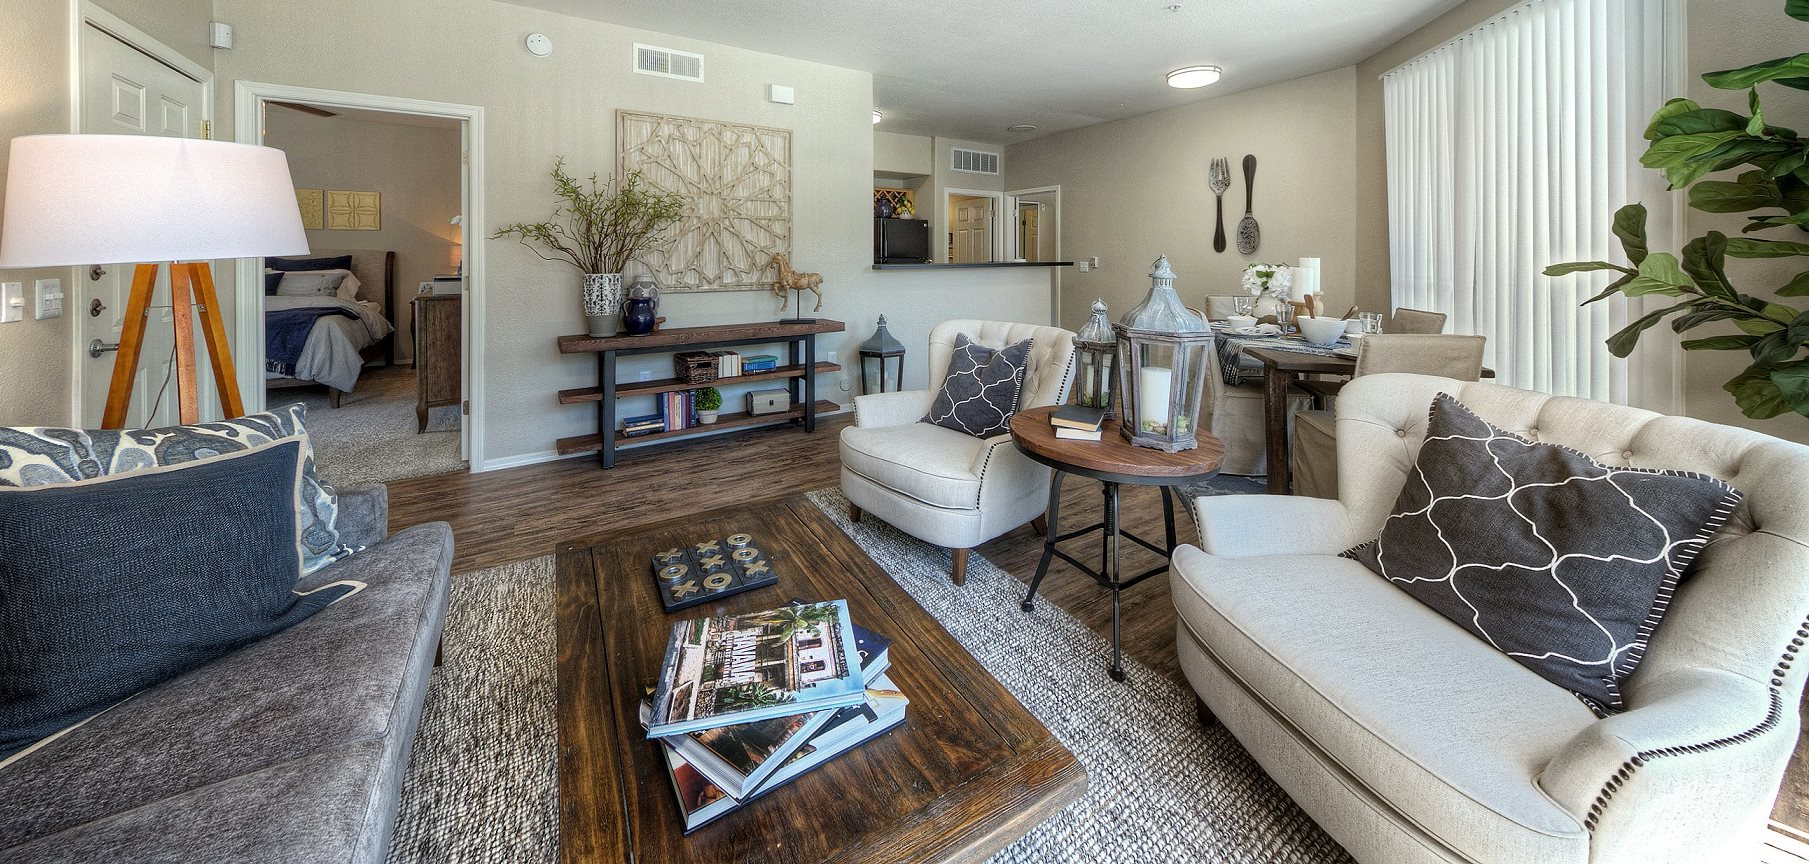 Crystal springs apartments in avondale az - One bedroom apartments in avondale az ...